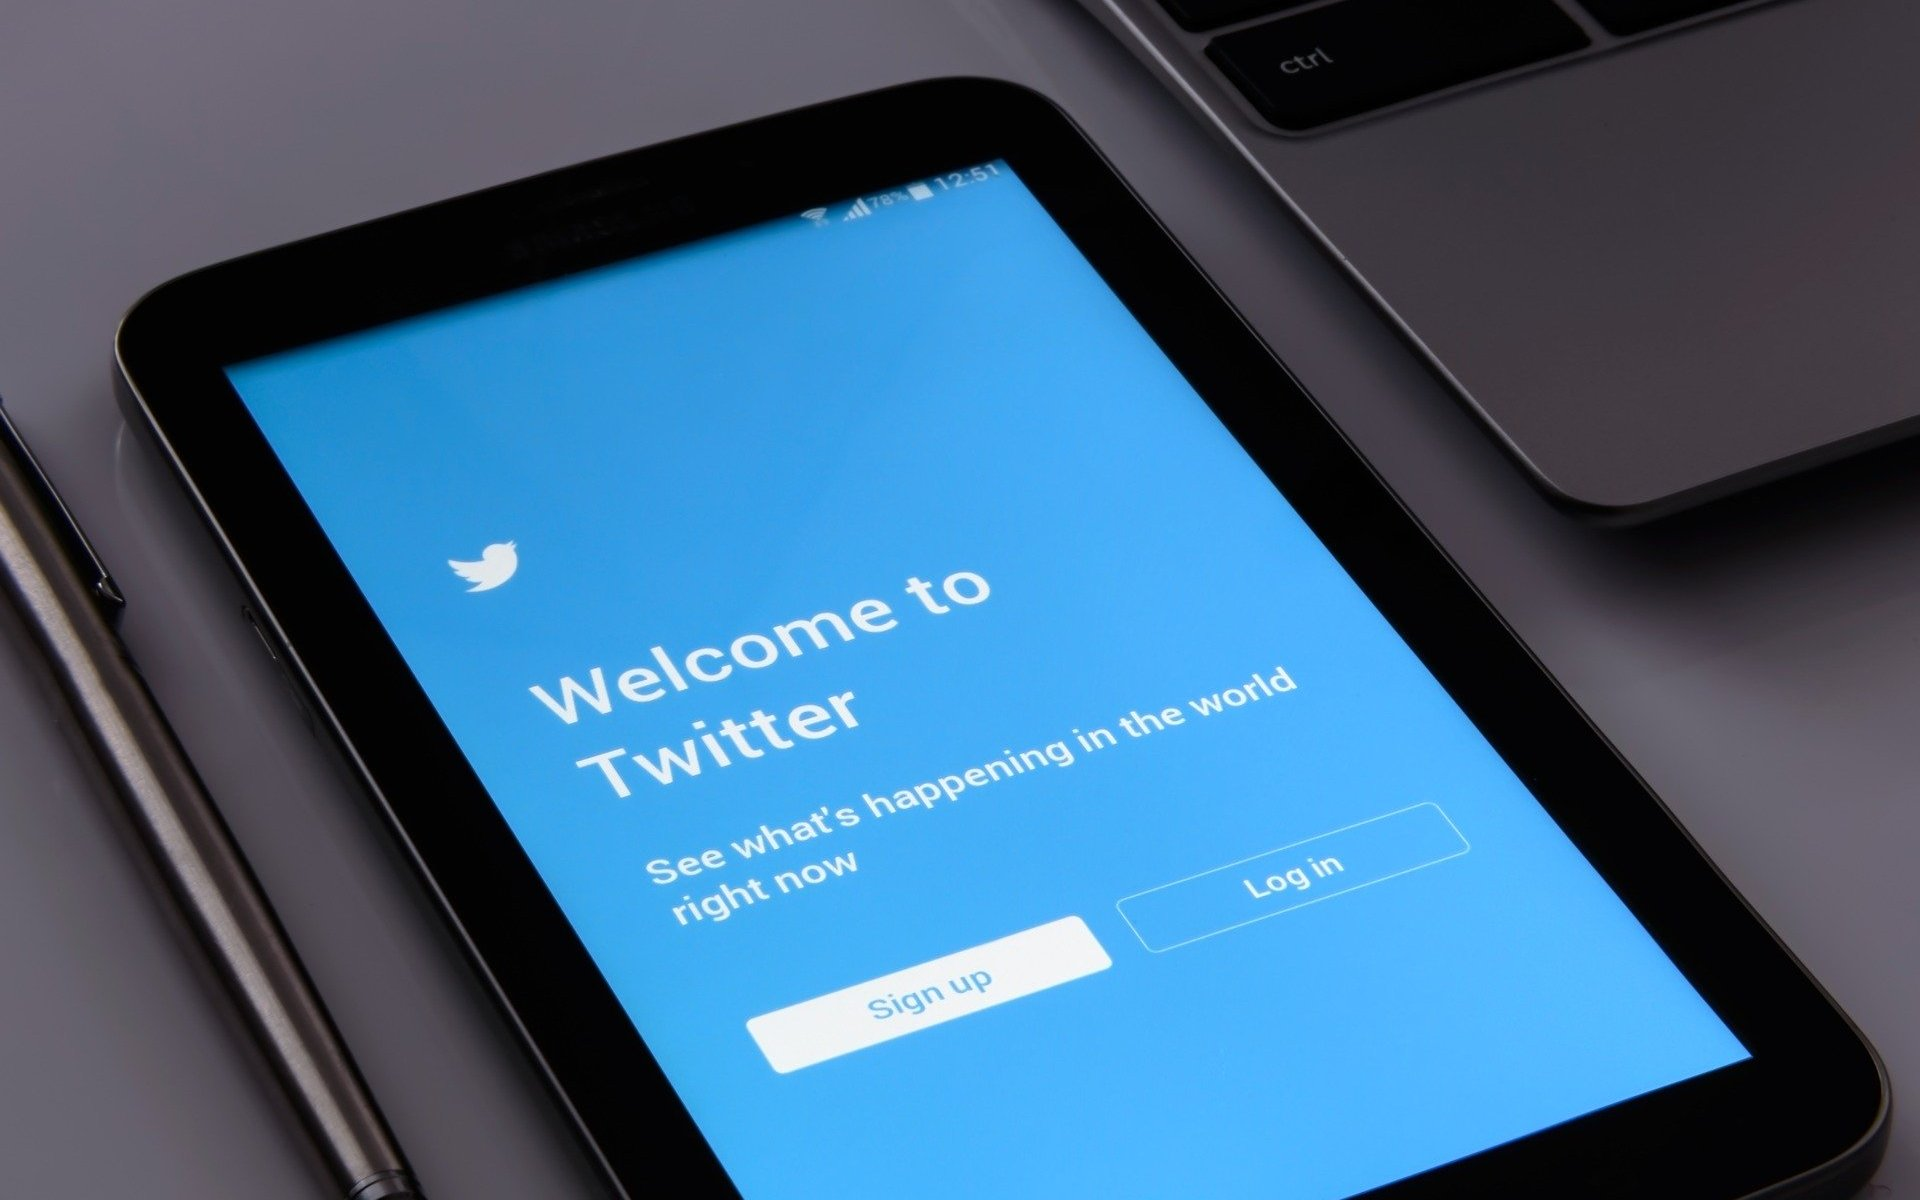 Twitter Sign-in On Mobile Phone